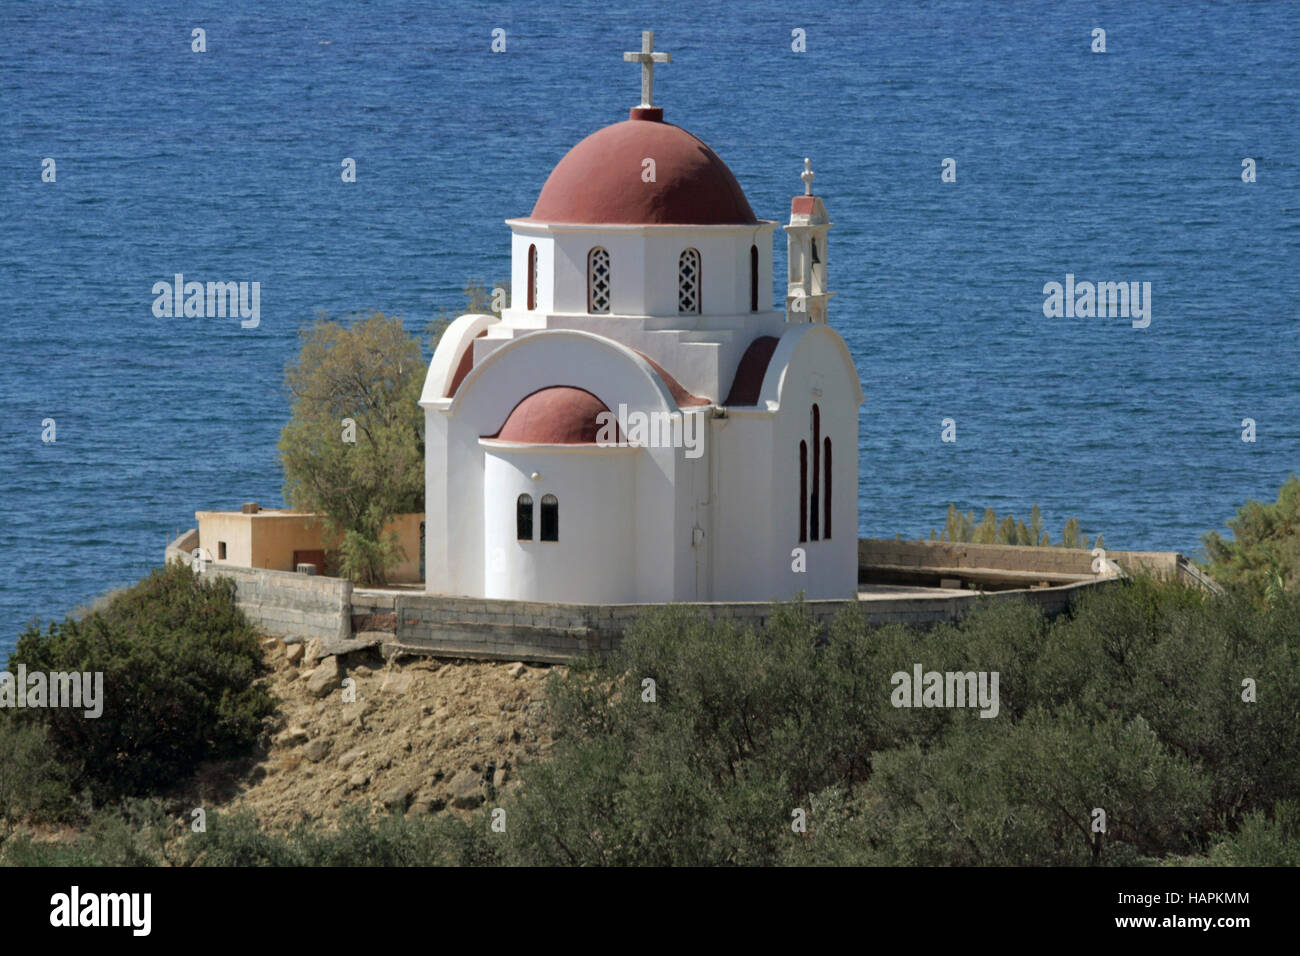 Church in Nea Mirtos. Crete - Stock Image